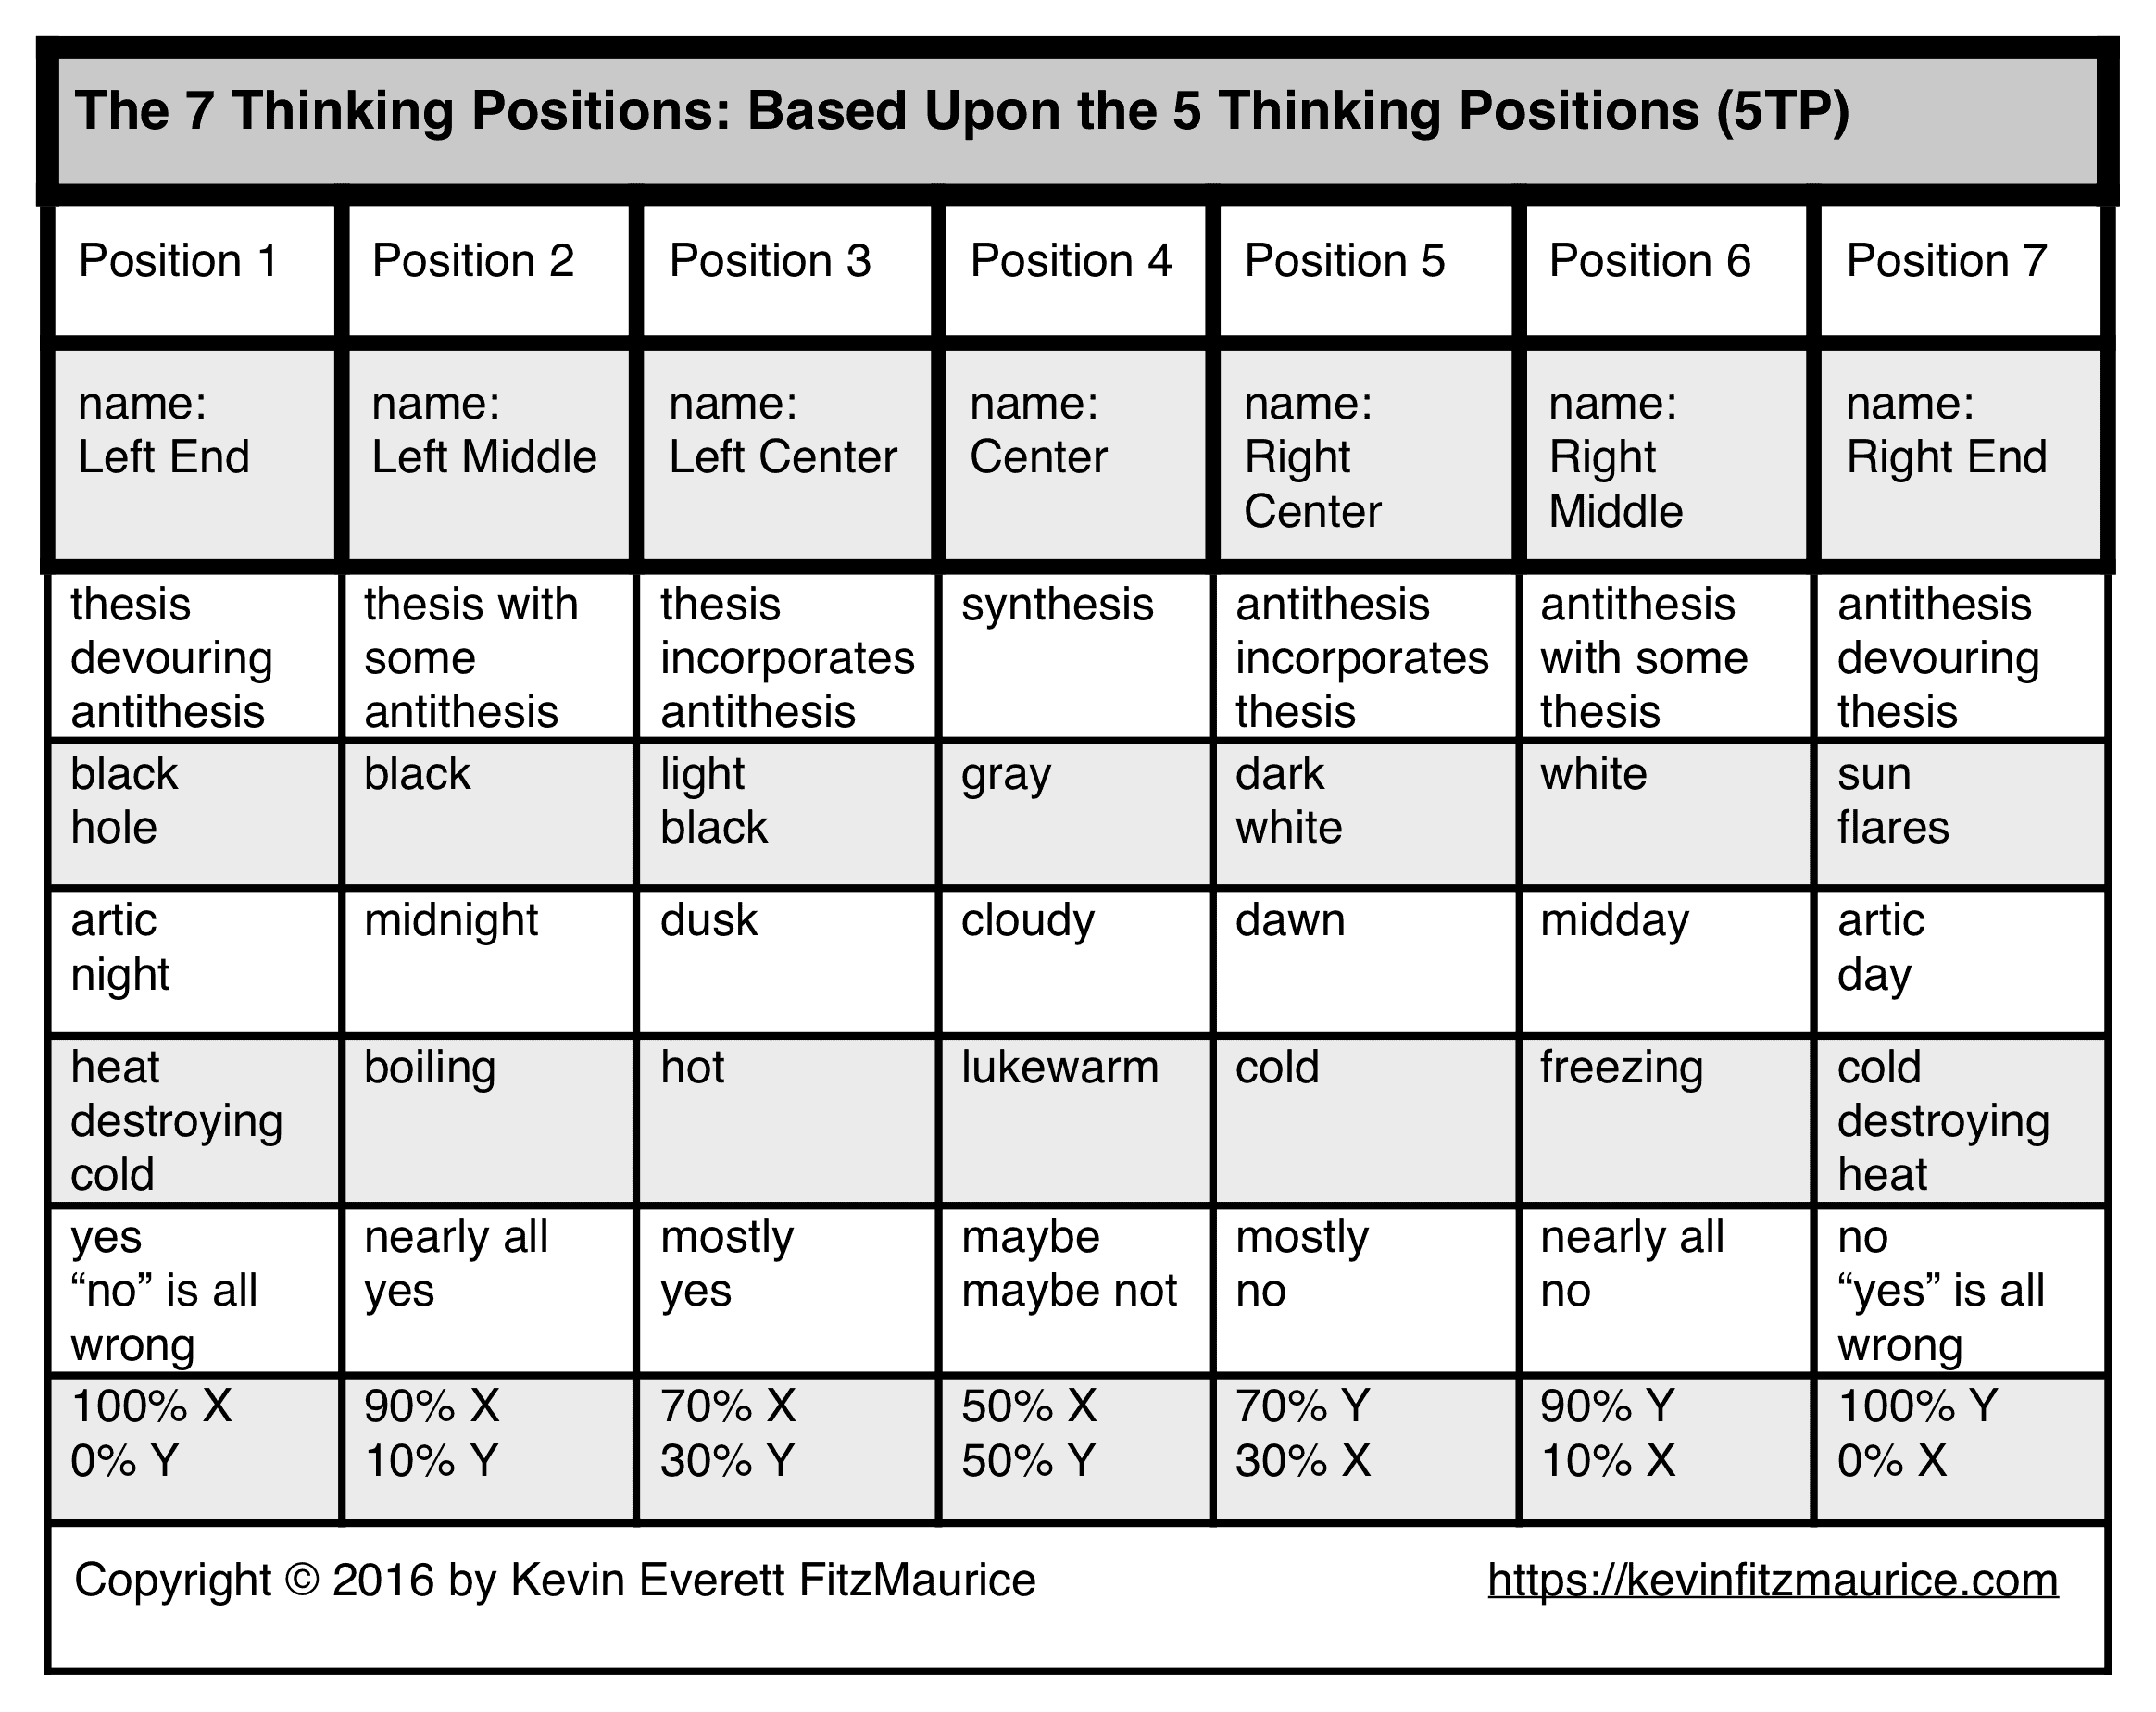 7 Thinking Positions based on 5TP